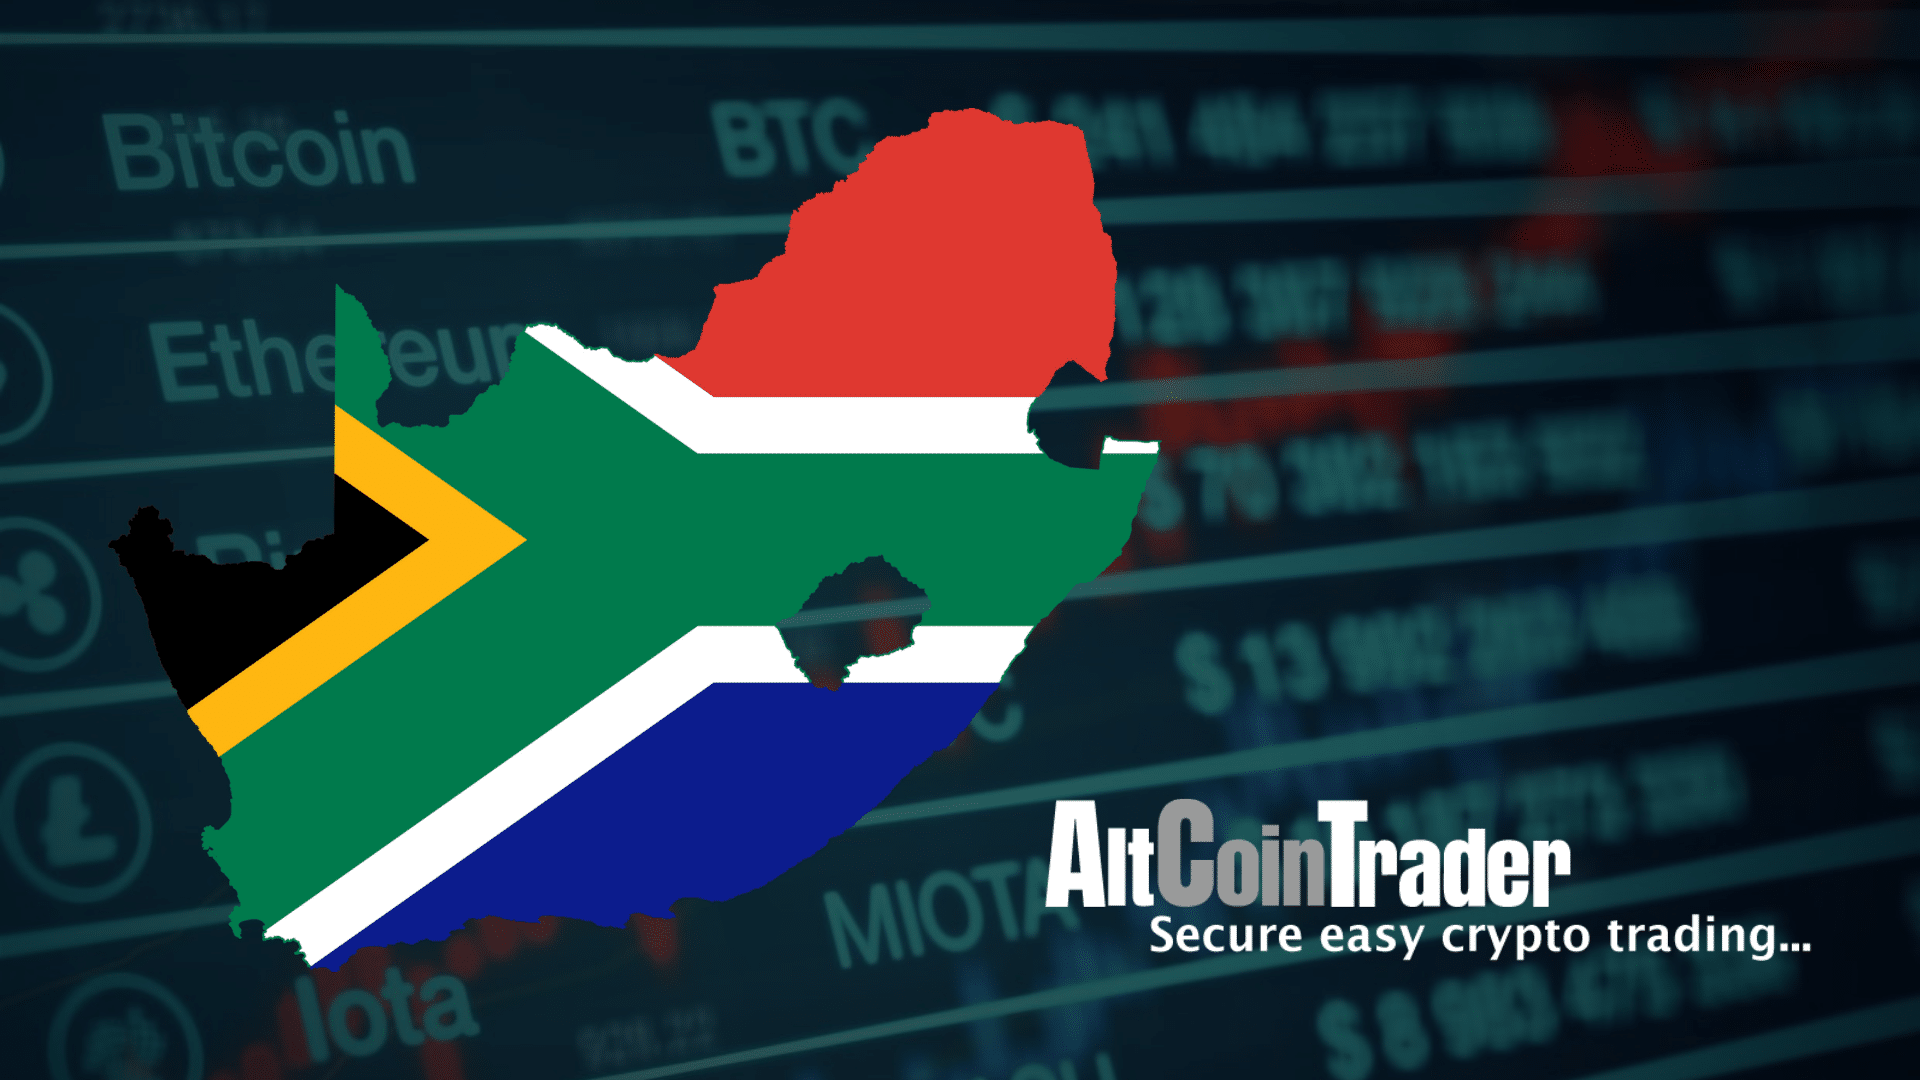 Altcoin Trader altcointrader cuts trading fees50% to tap the growing